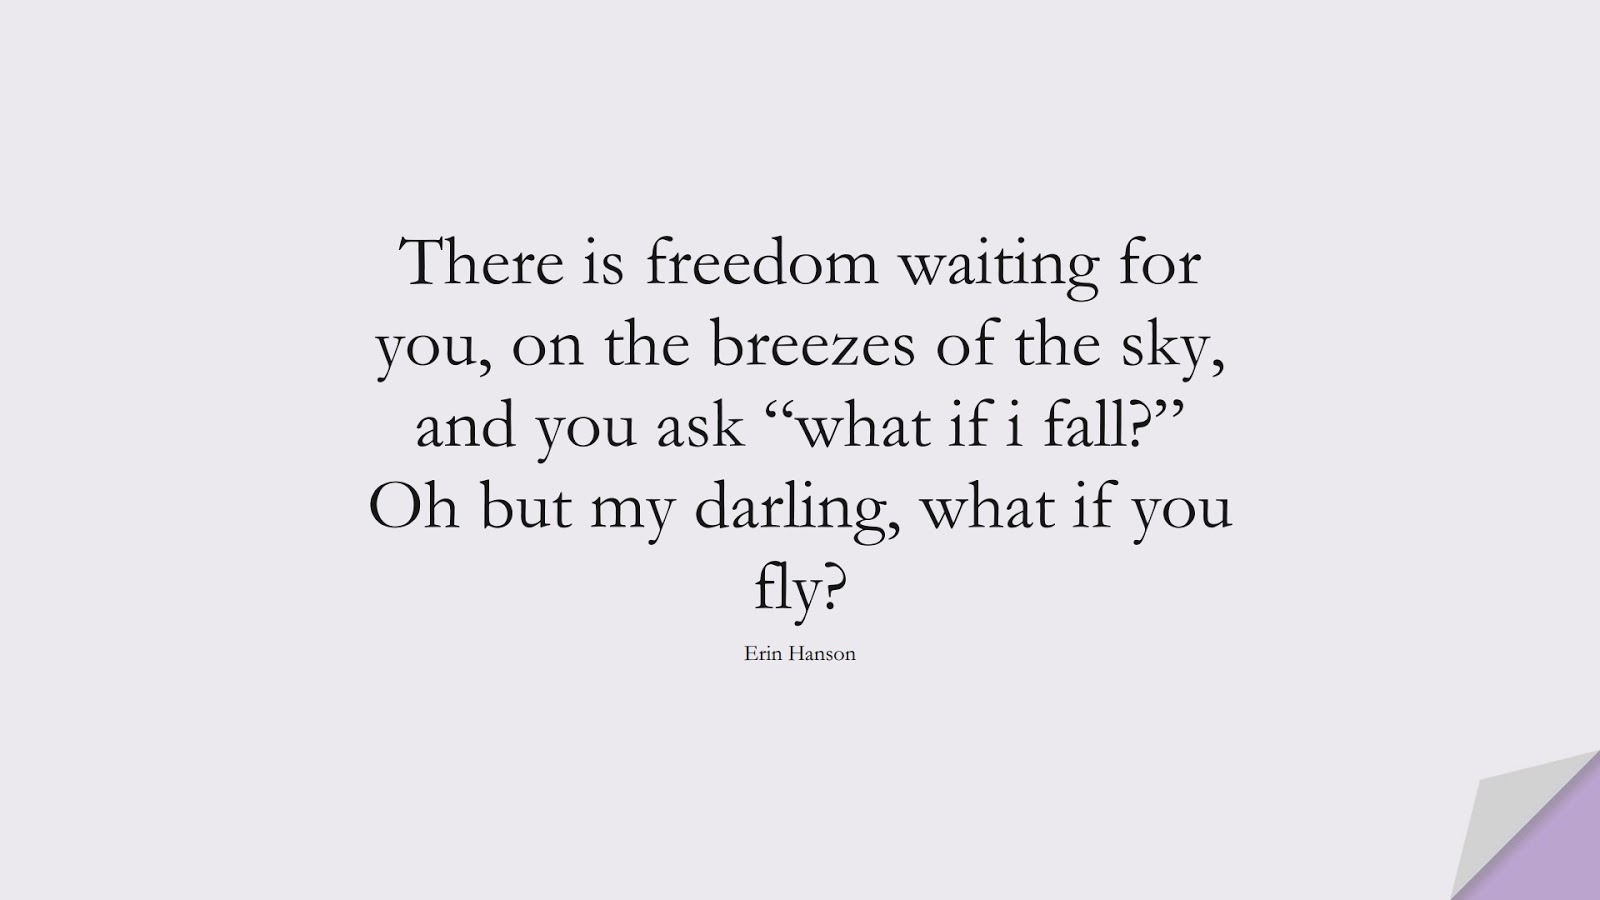 """There is freedom waiting for you, on the breezes of the sky, and you ask """"what if i fall?"""" Oh but my darling, what if you fly? (Erin Hanson);  #LifeQuotes"""